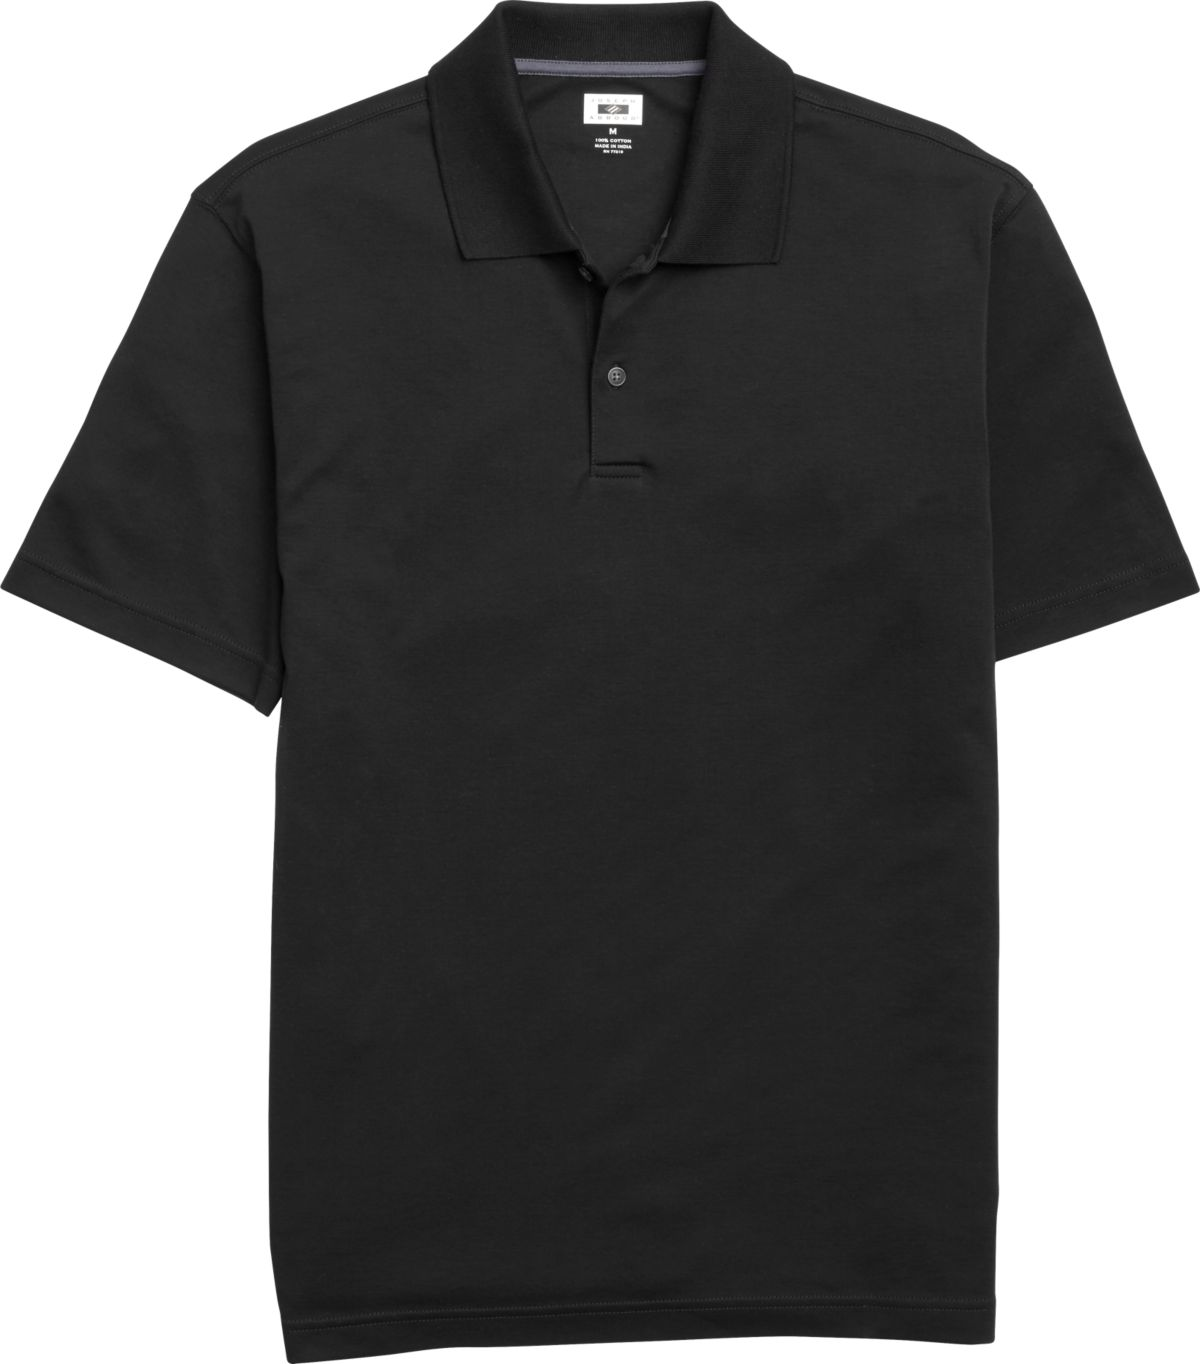 Joseph Abboud Black Pima Cotton Polo Shirt - Men's $389.99 Calvin ...